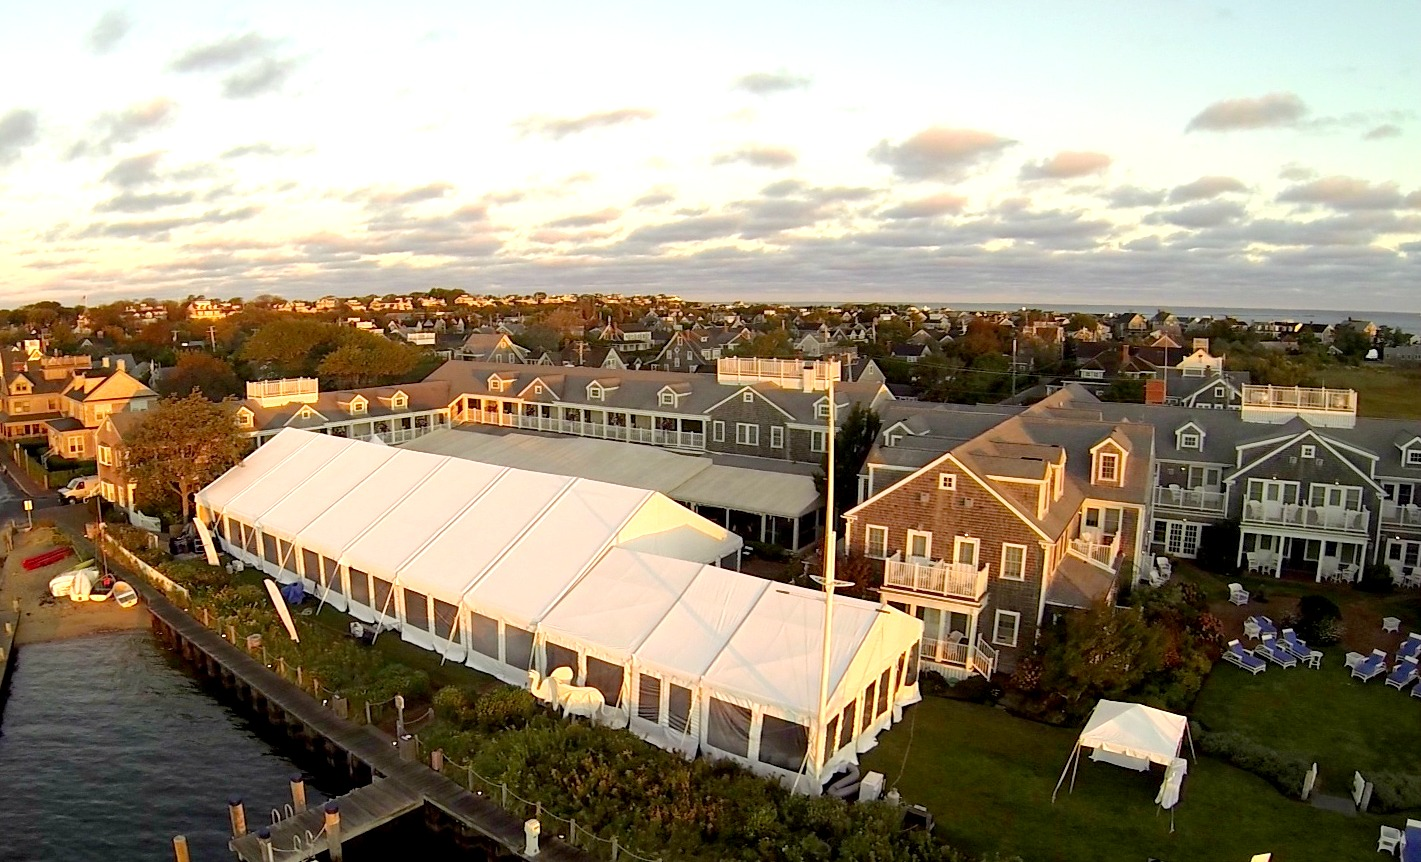 NANTUCKET PROJECT WHITE ELEPHANT HOTEL